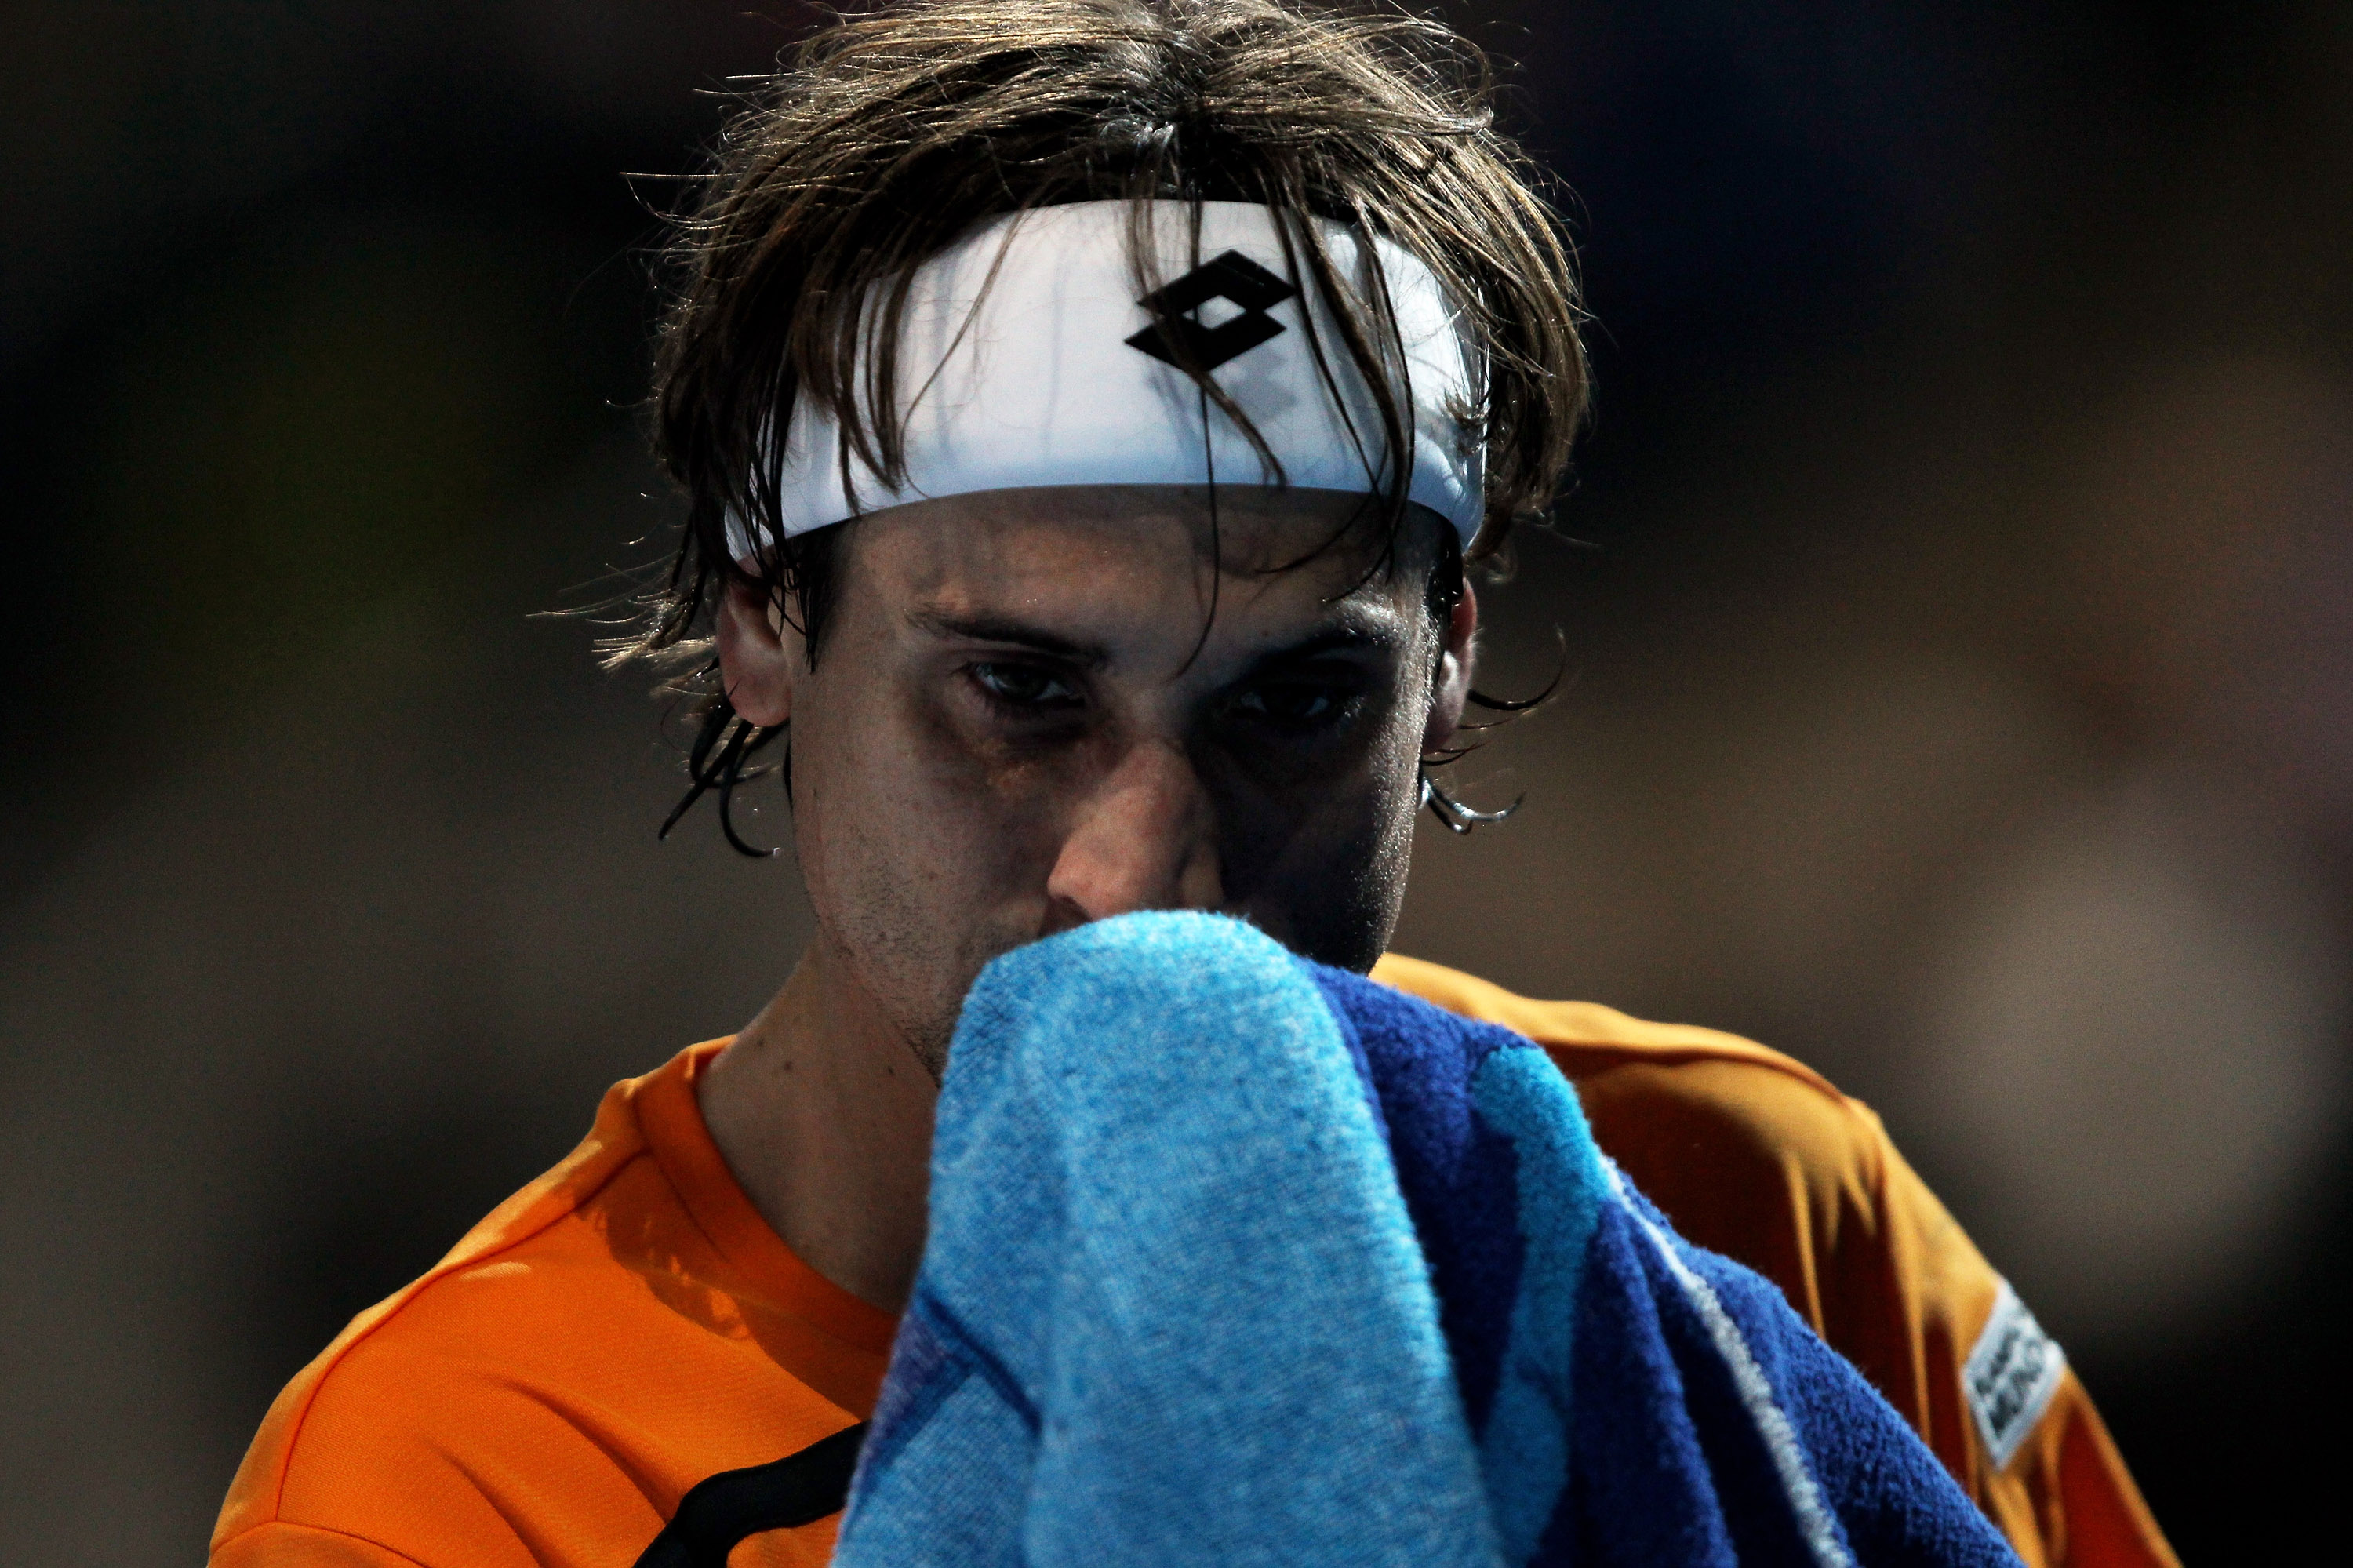 David Ferrer finished the year at World Number 7.